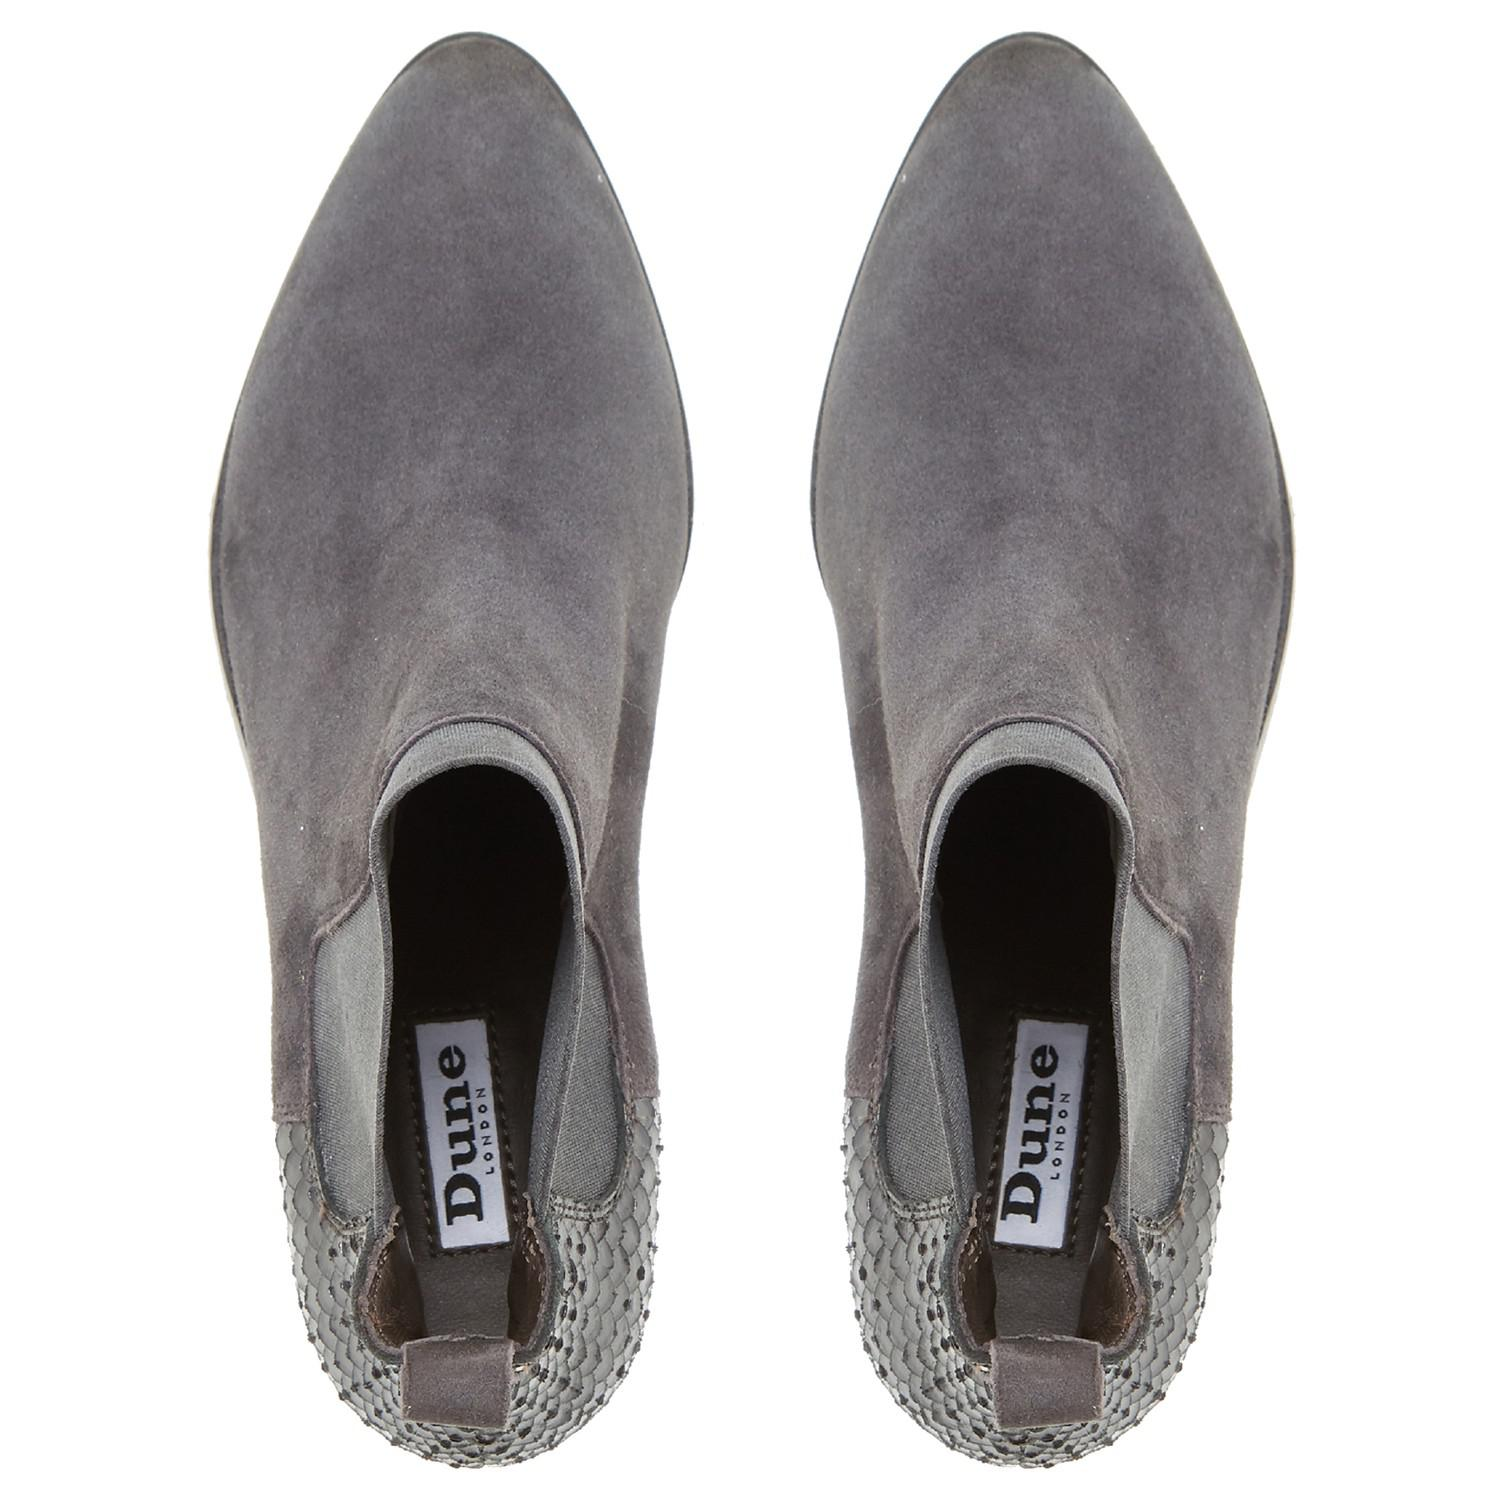 Dune Leather Oprentice Block Heeled Ankle Boots in Grey (Grey)